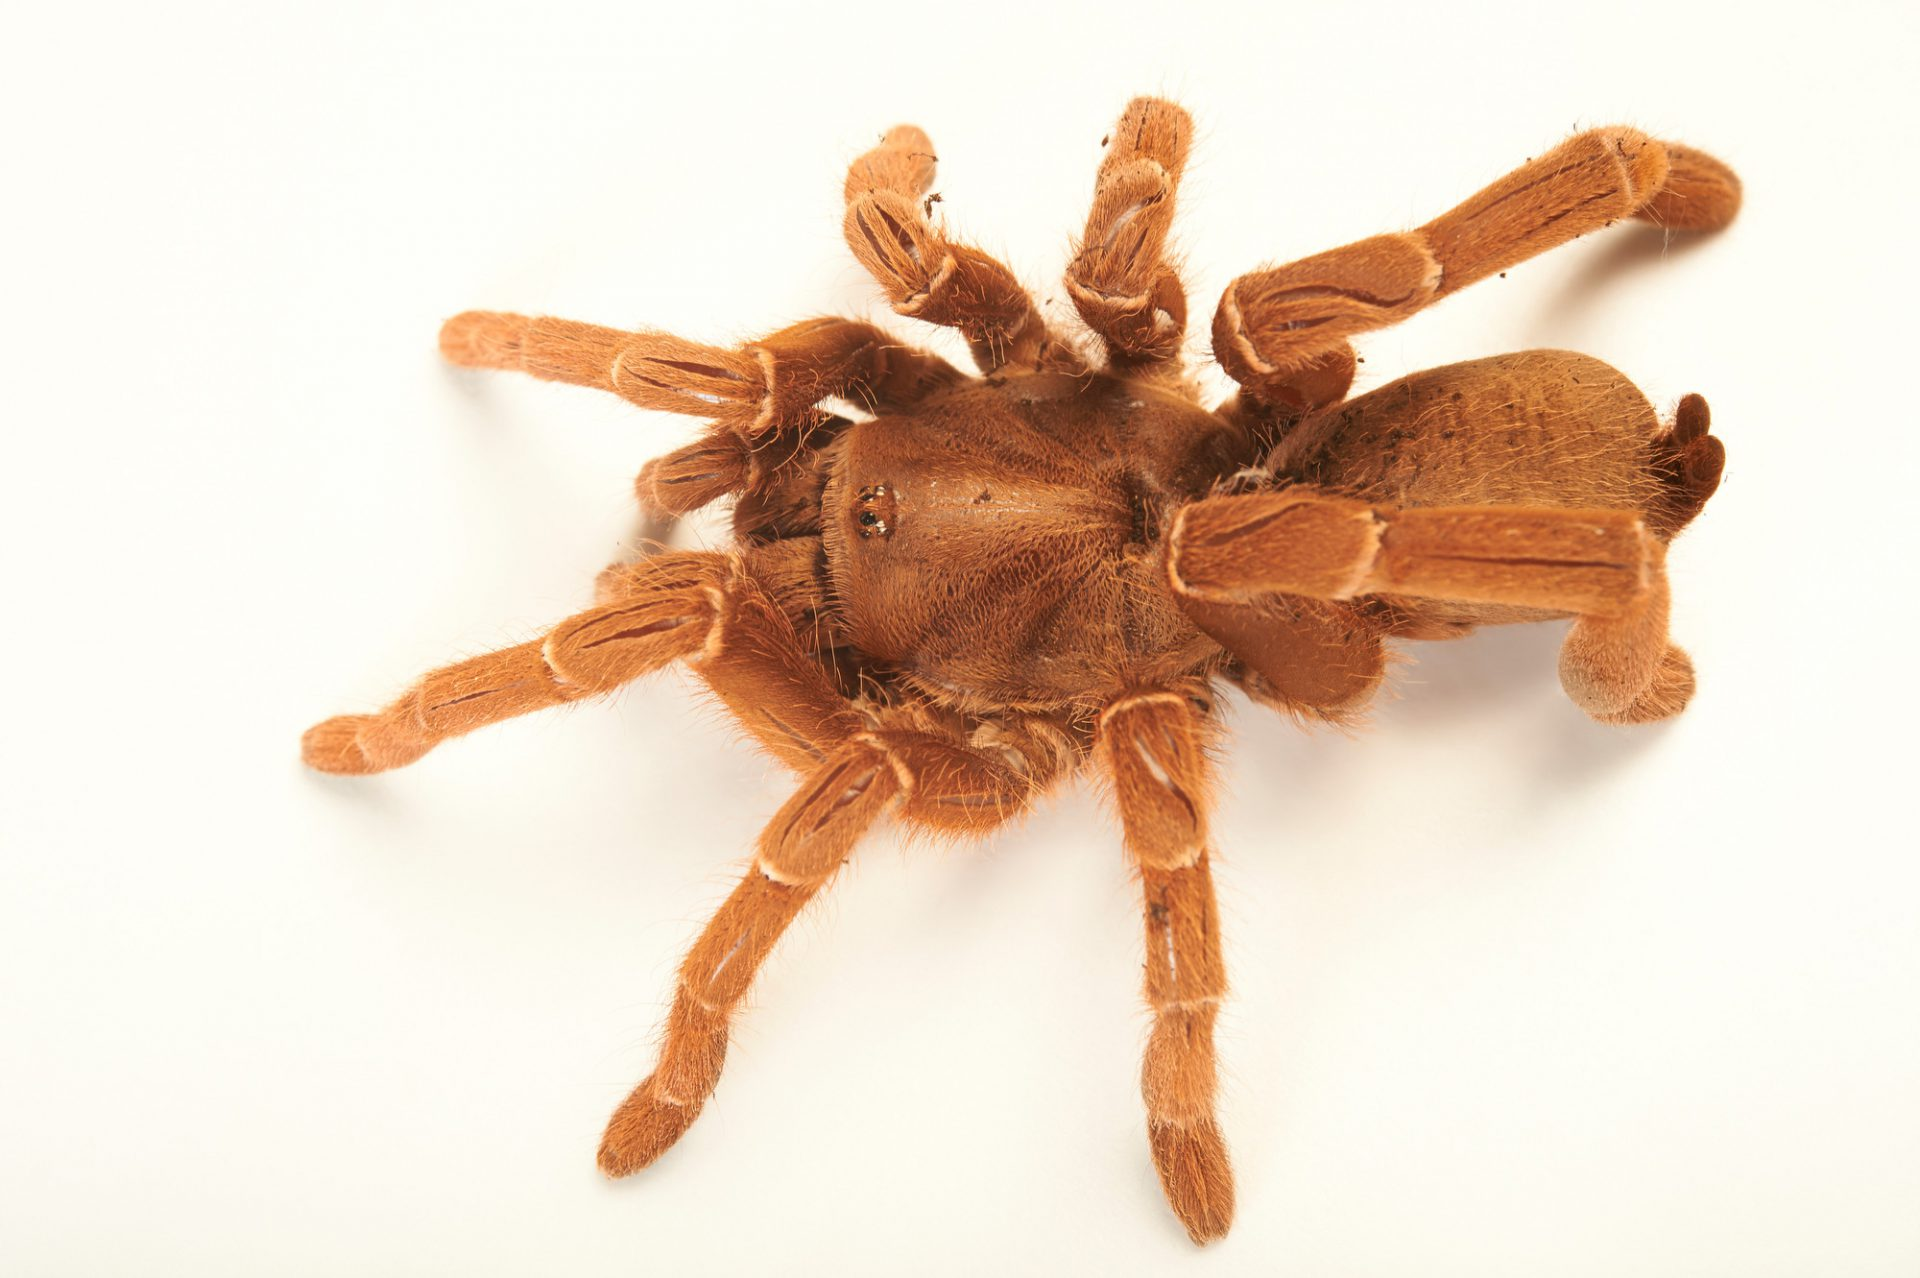 Picture of a brown baboon spider (Pelinobius muticus) at the Wellington Zoo.